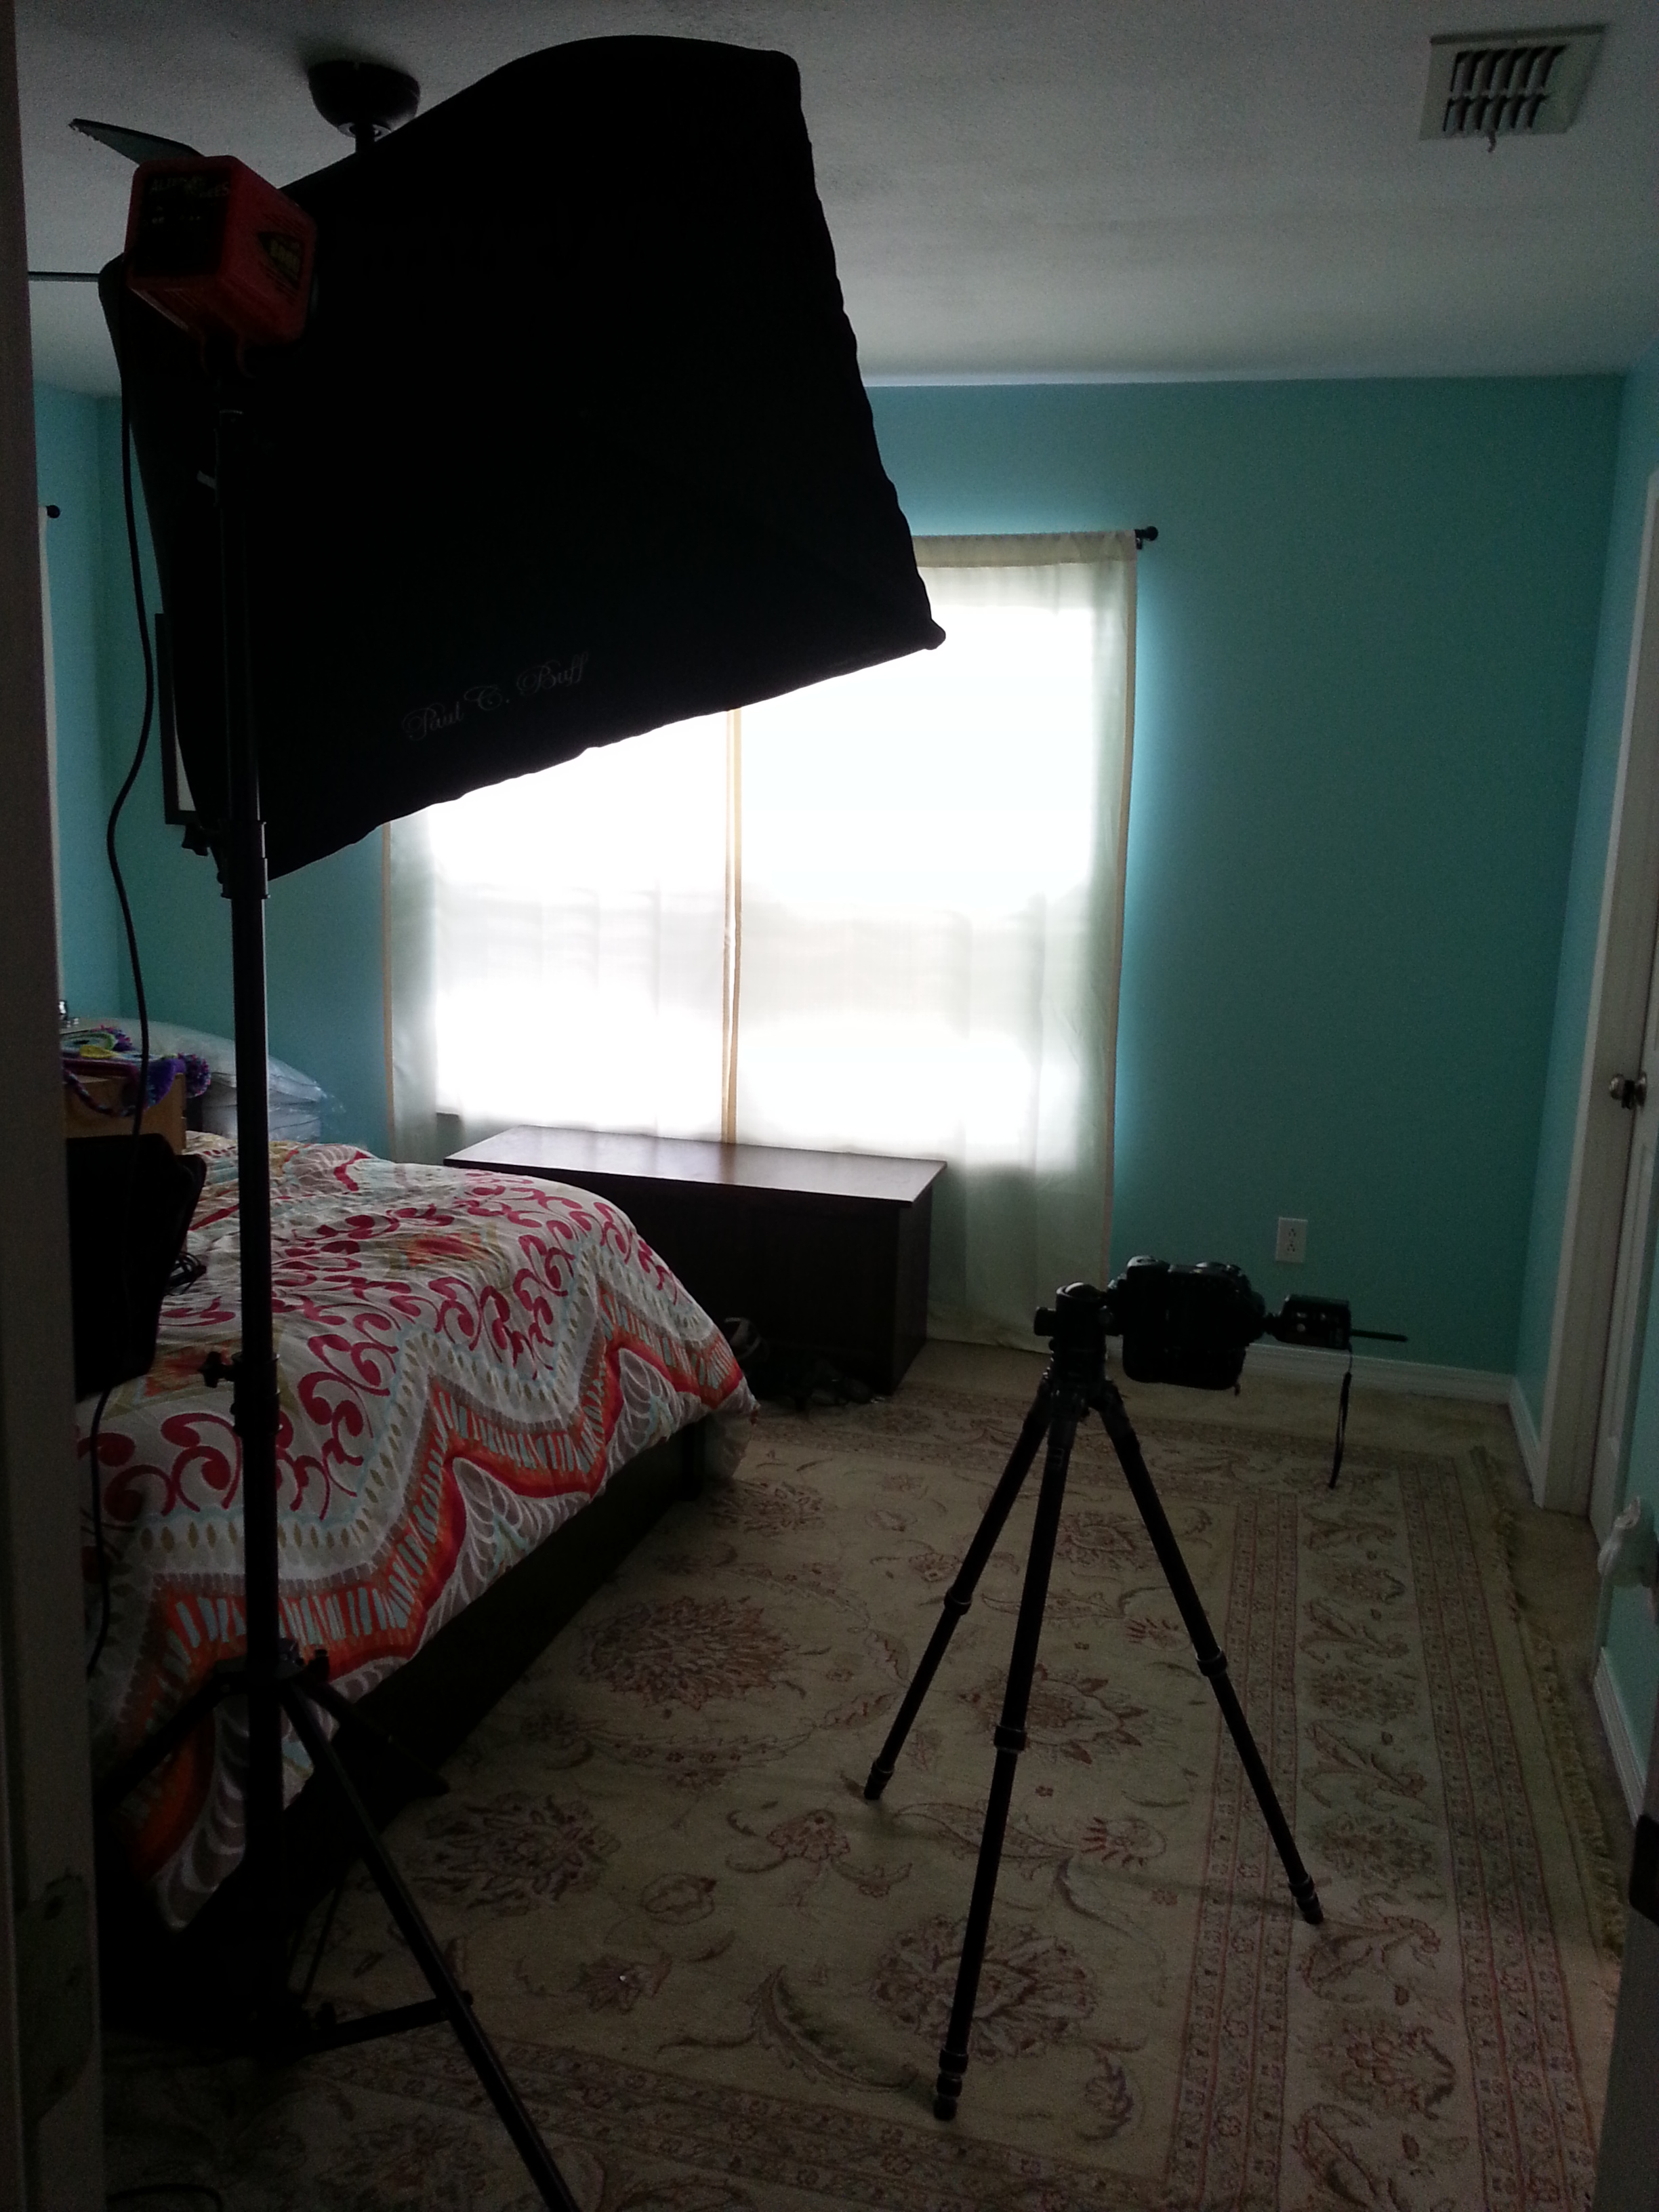 The setup for our photo shoot.